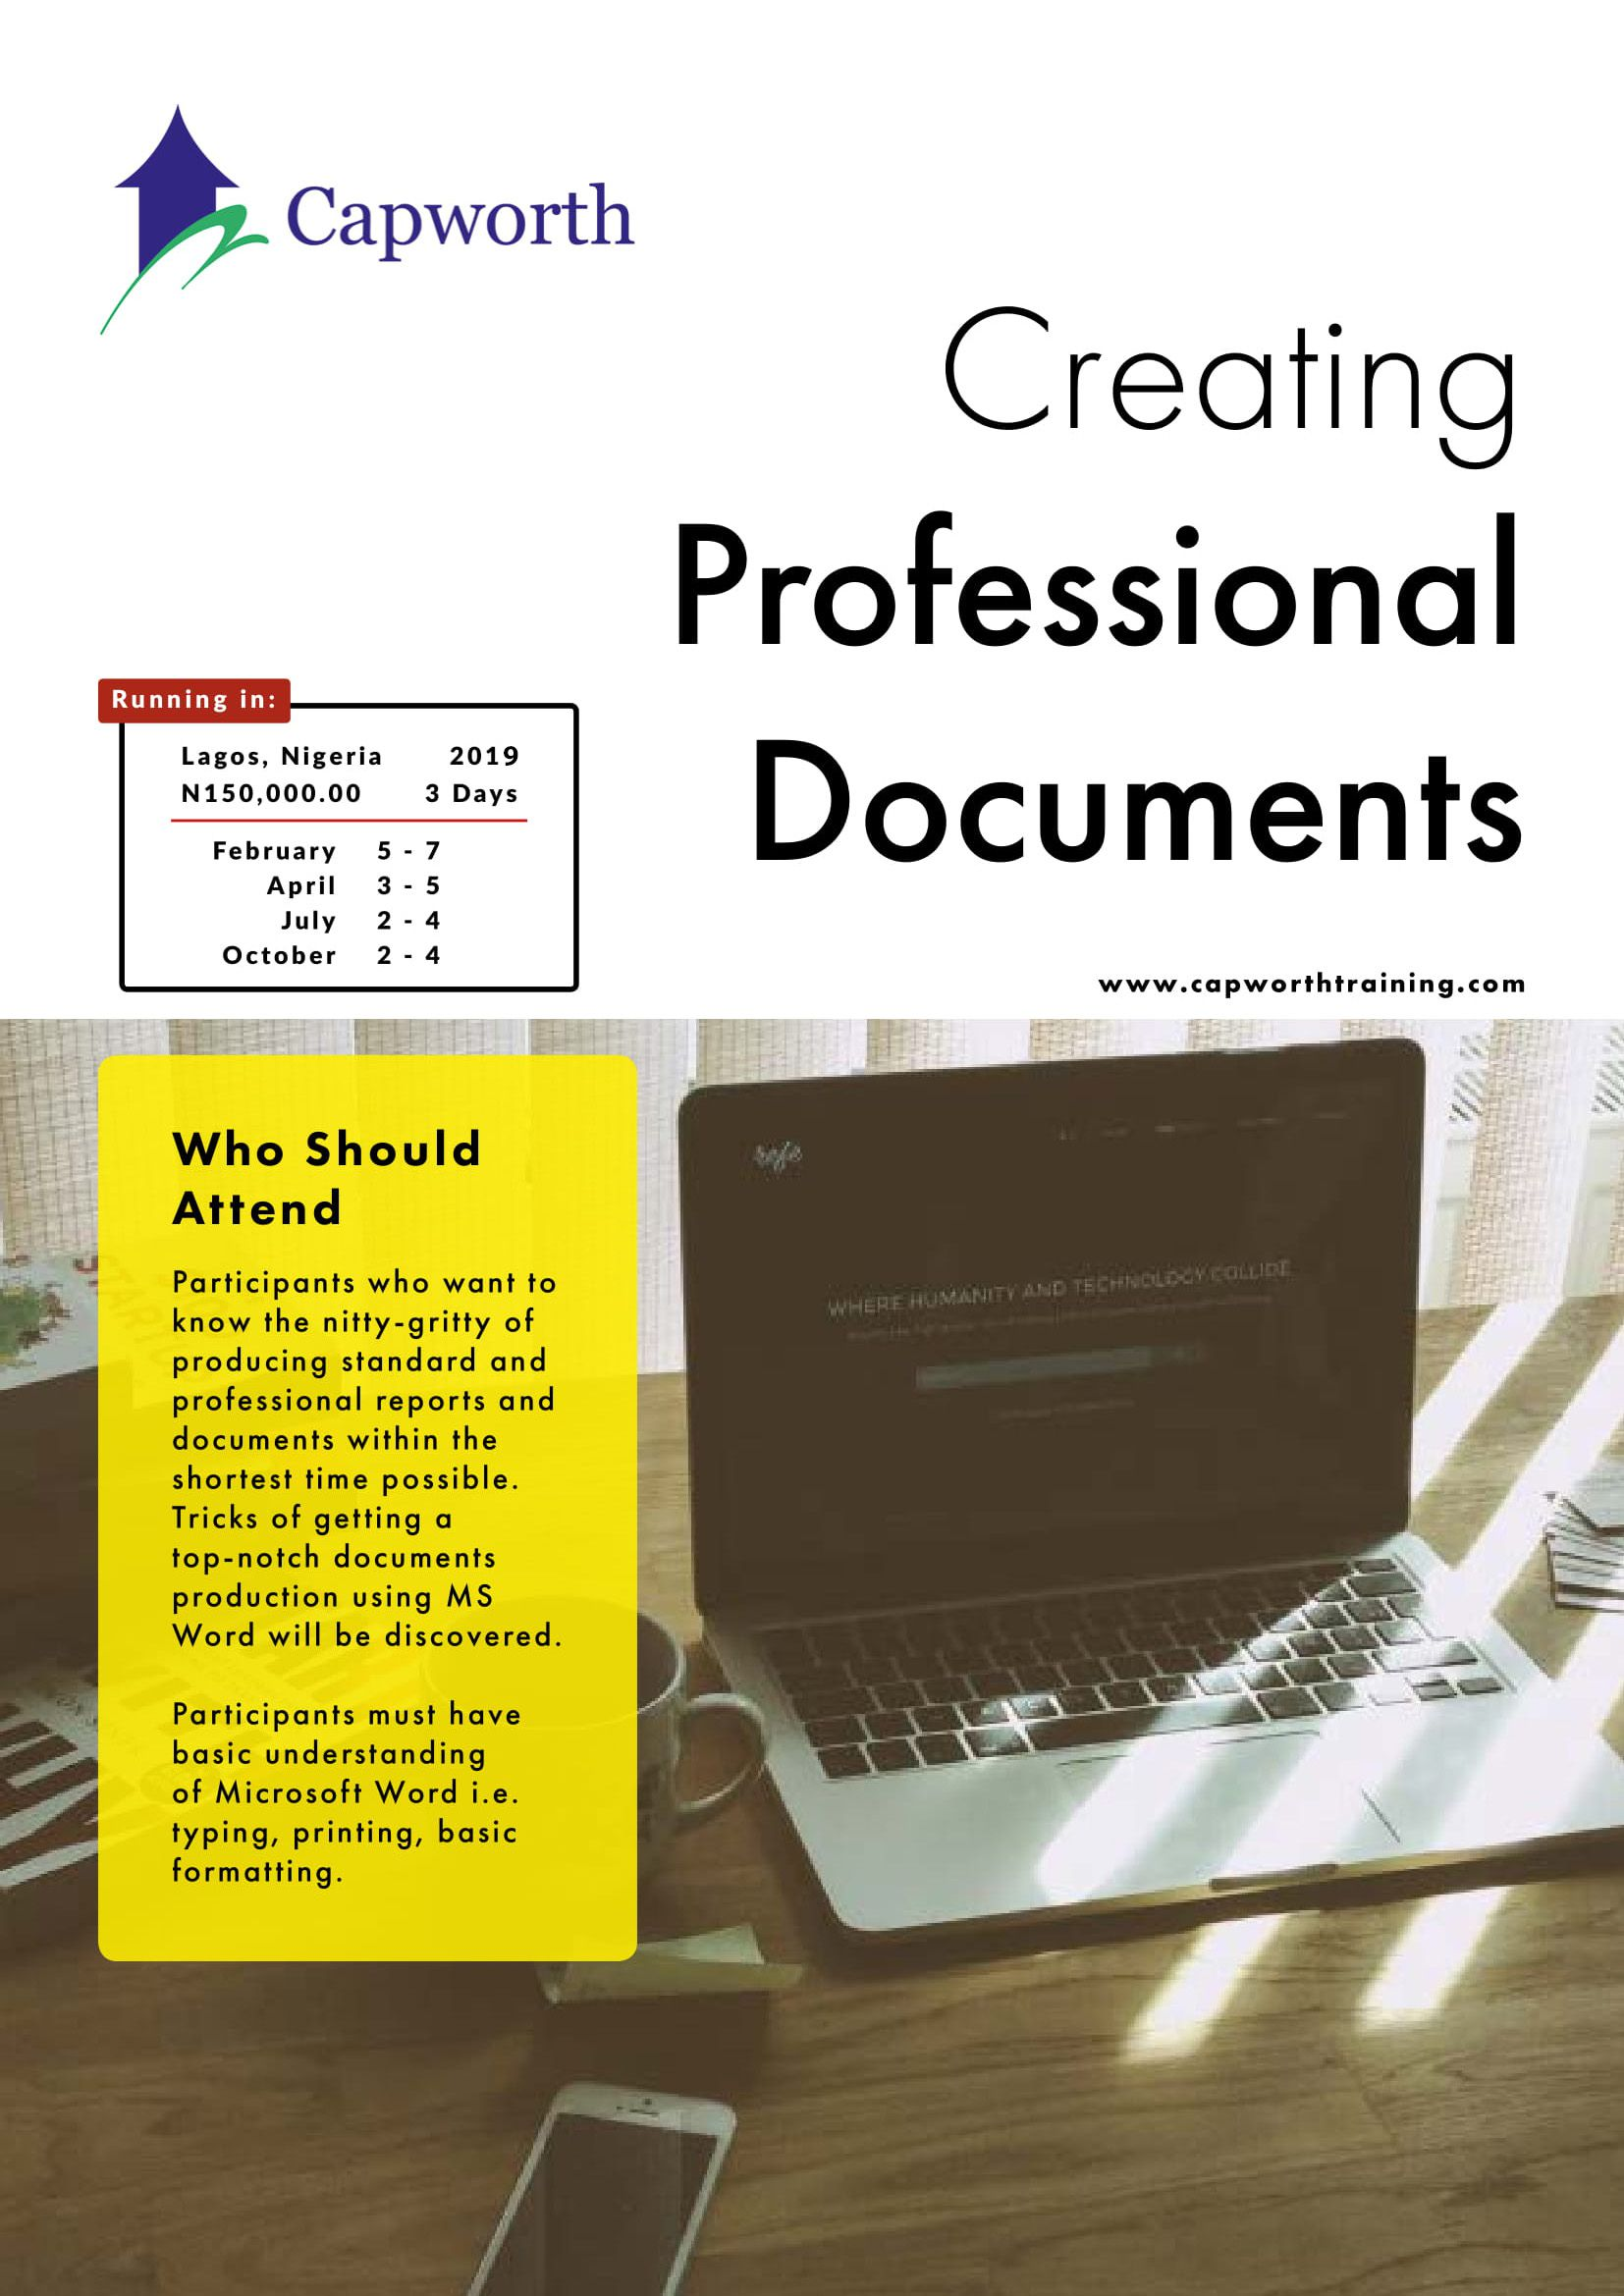 Creating Professional Documents - ICT_Page_1.jpg